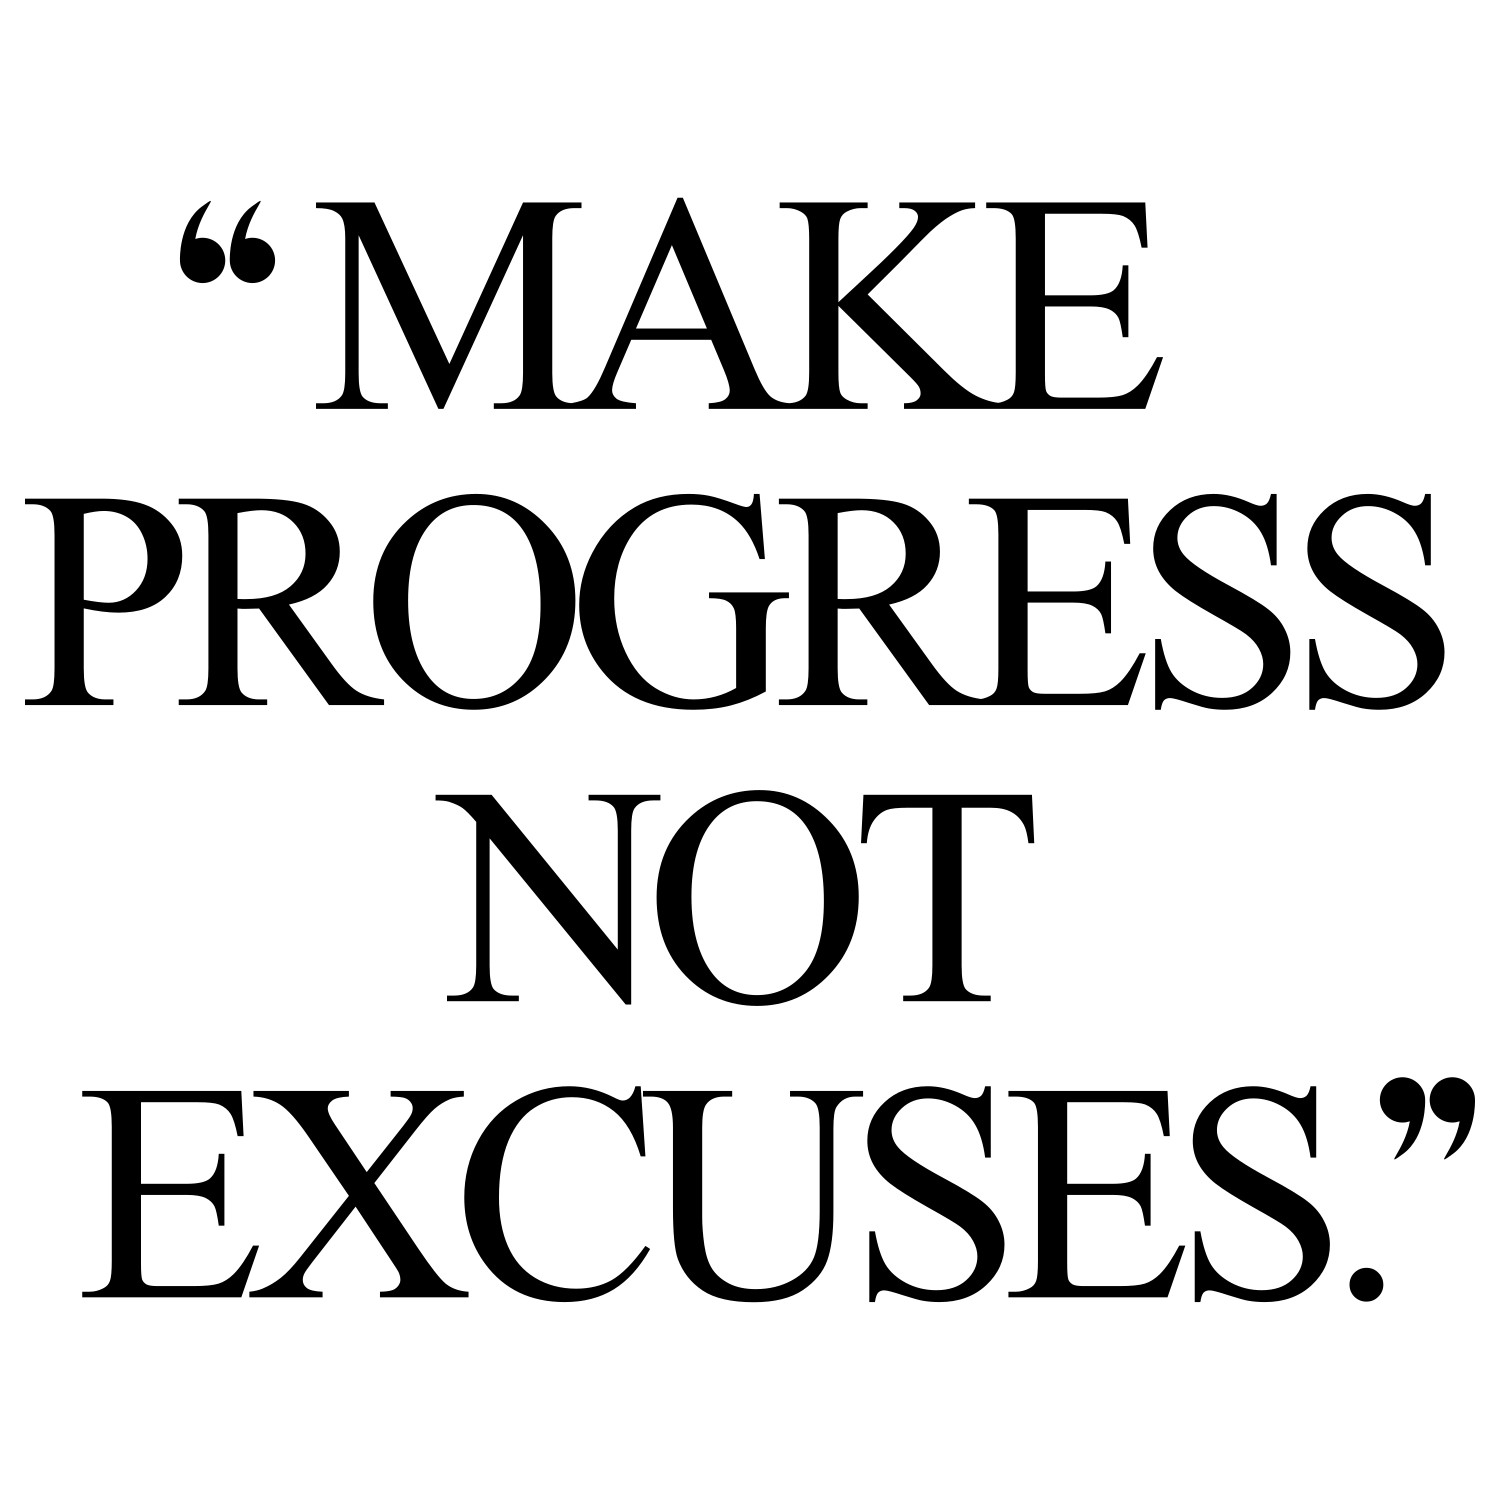 Make Progress Exercise And Healthy Eating Quote